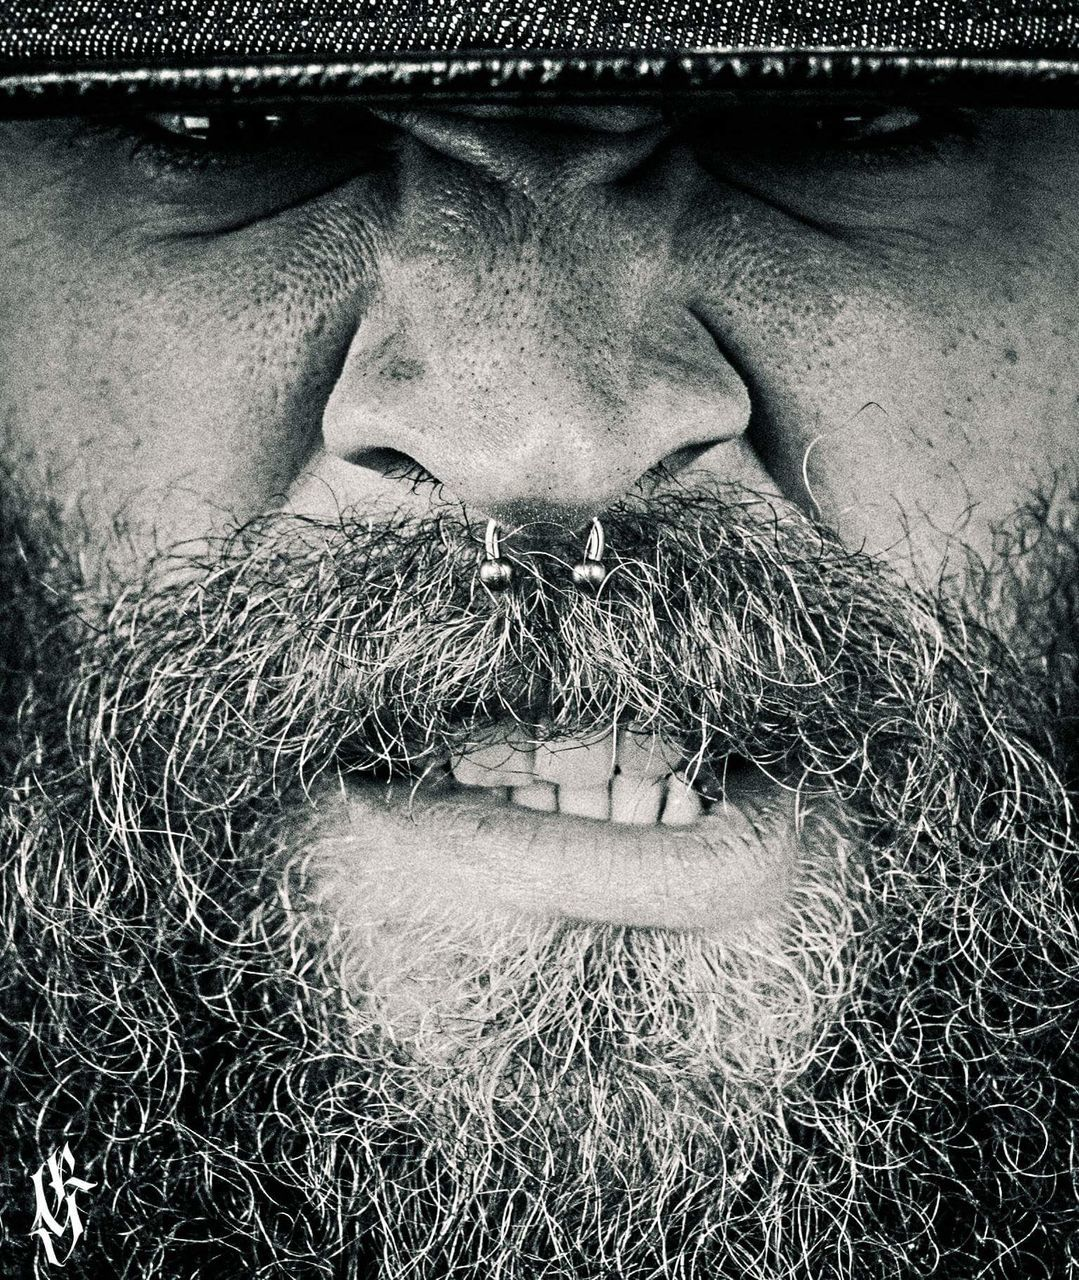 beard, only men, human face, one man only, one person, adults only, human body part, portrait, adult, real people, men, mature adult, one mature man only, people, close-up, masculinity, outdoors, day